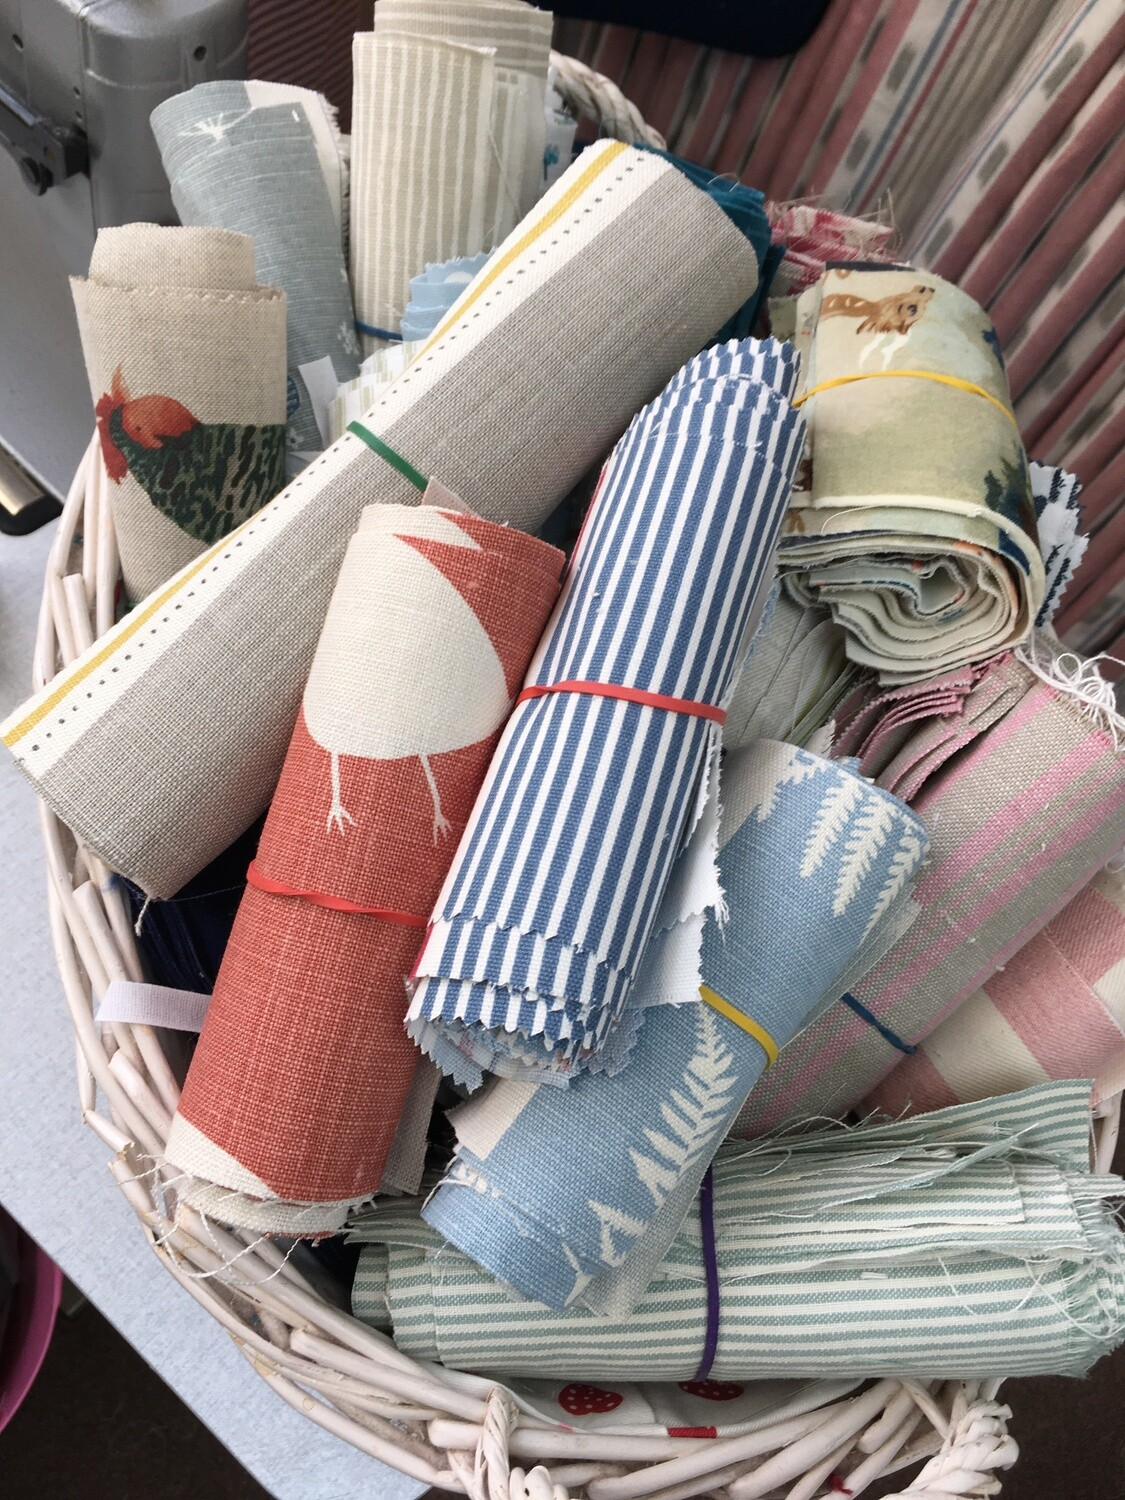 Little fabric bundles